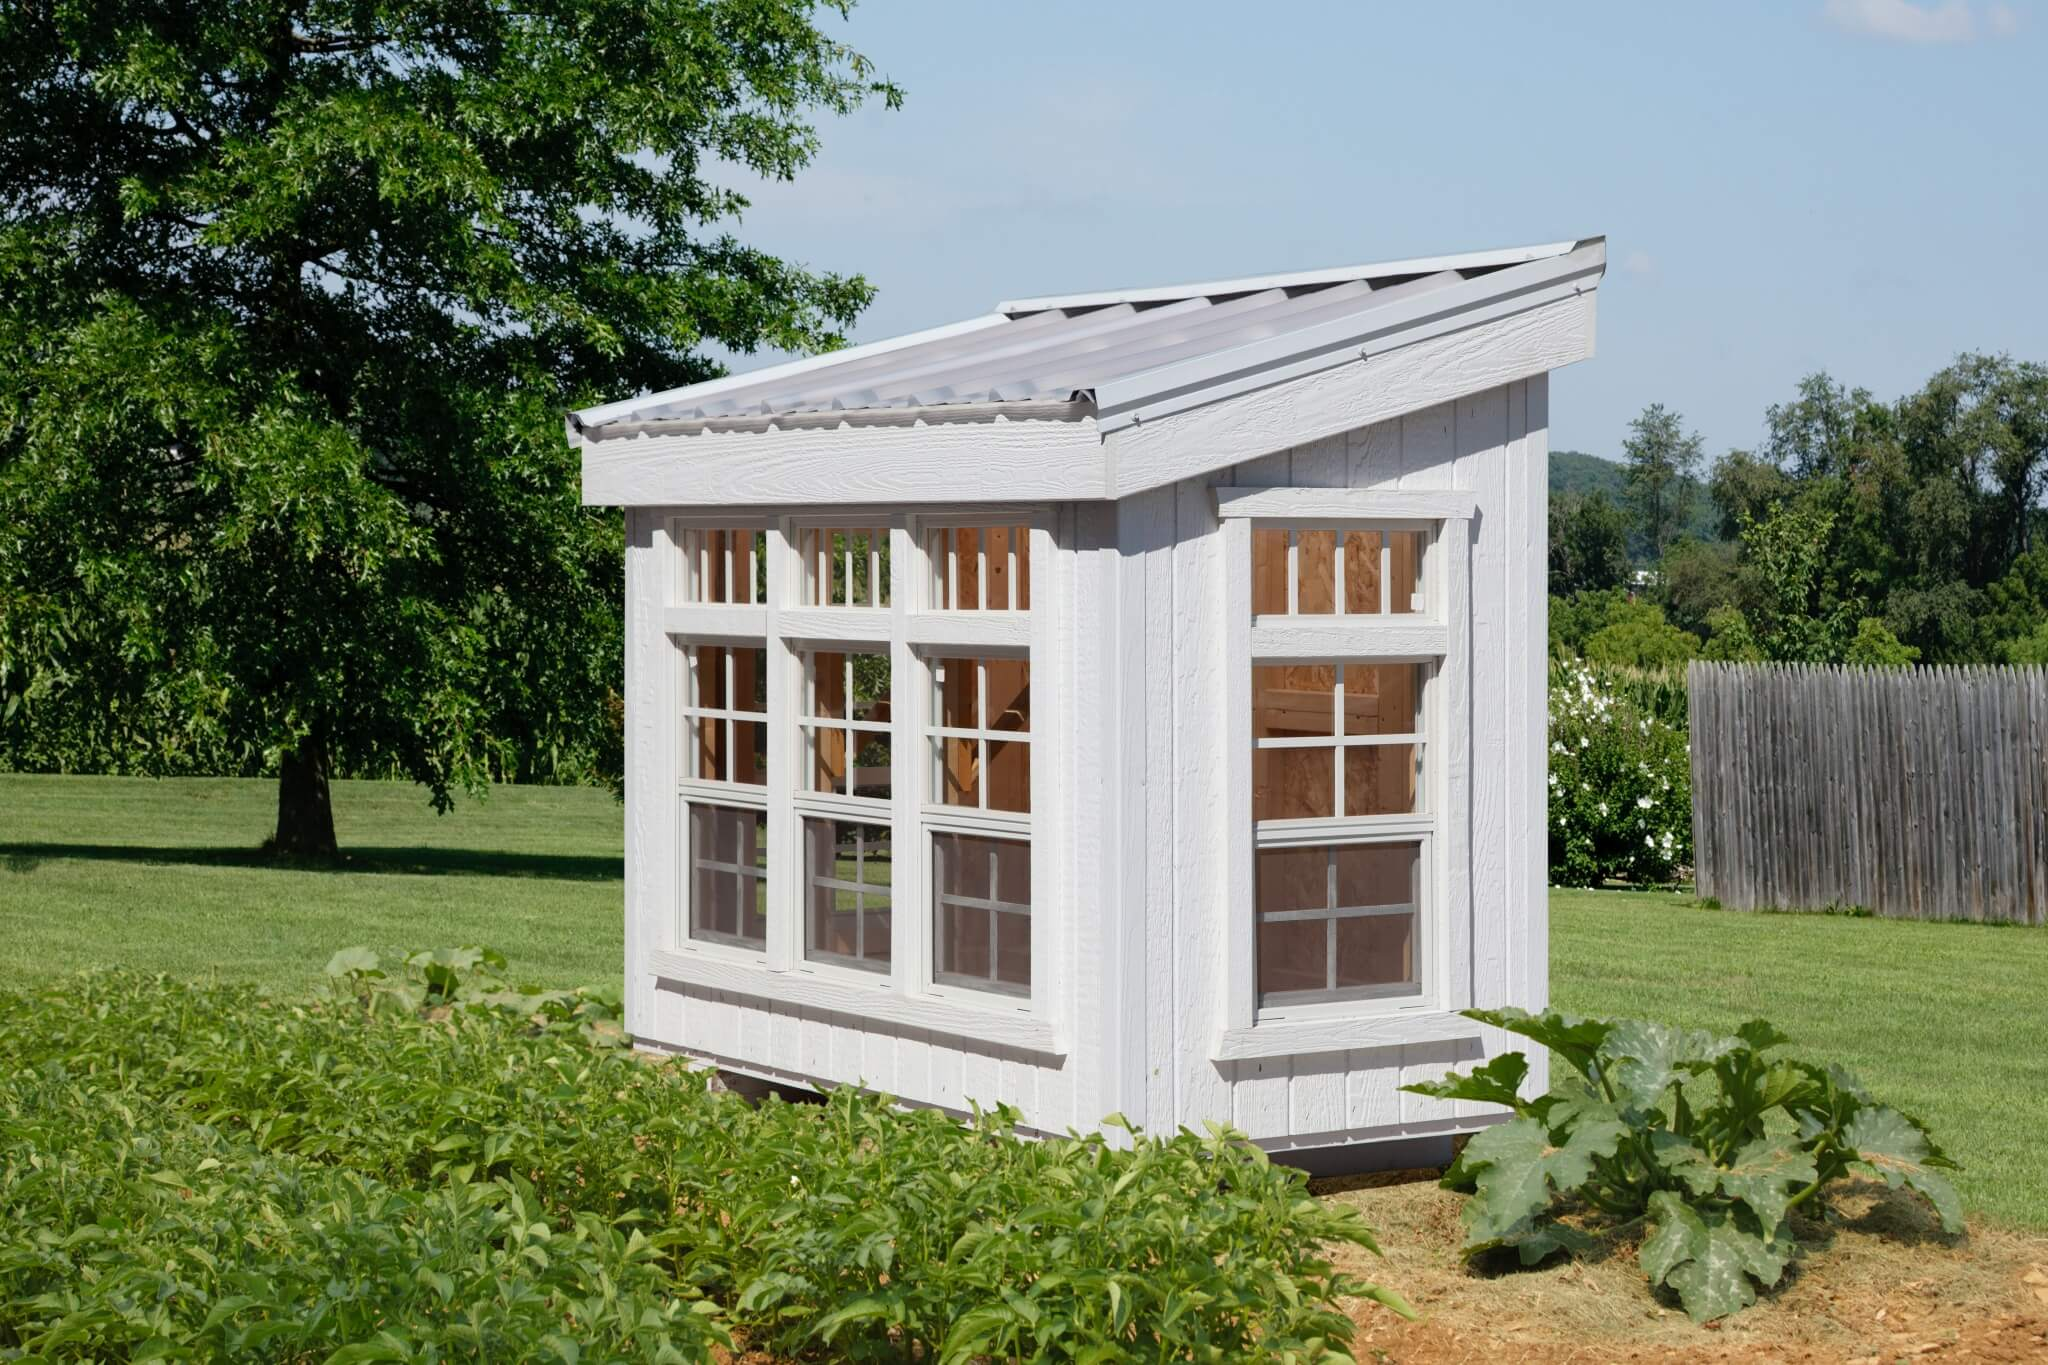 The perfect mini greenhouse for small projects, the Petite Greenhouse features five 14x21 windows, five 6x14 transom windows. Designed exclusively by Little Cottage Company®.